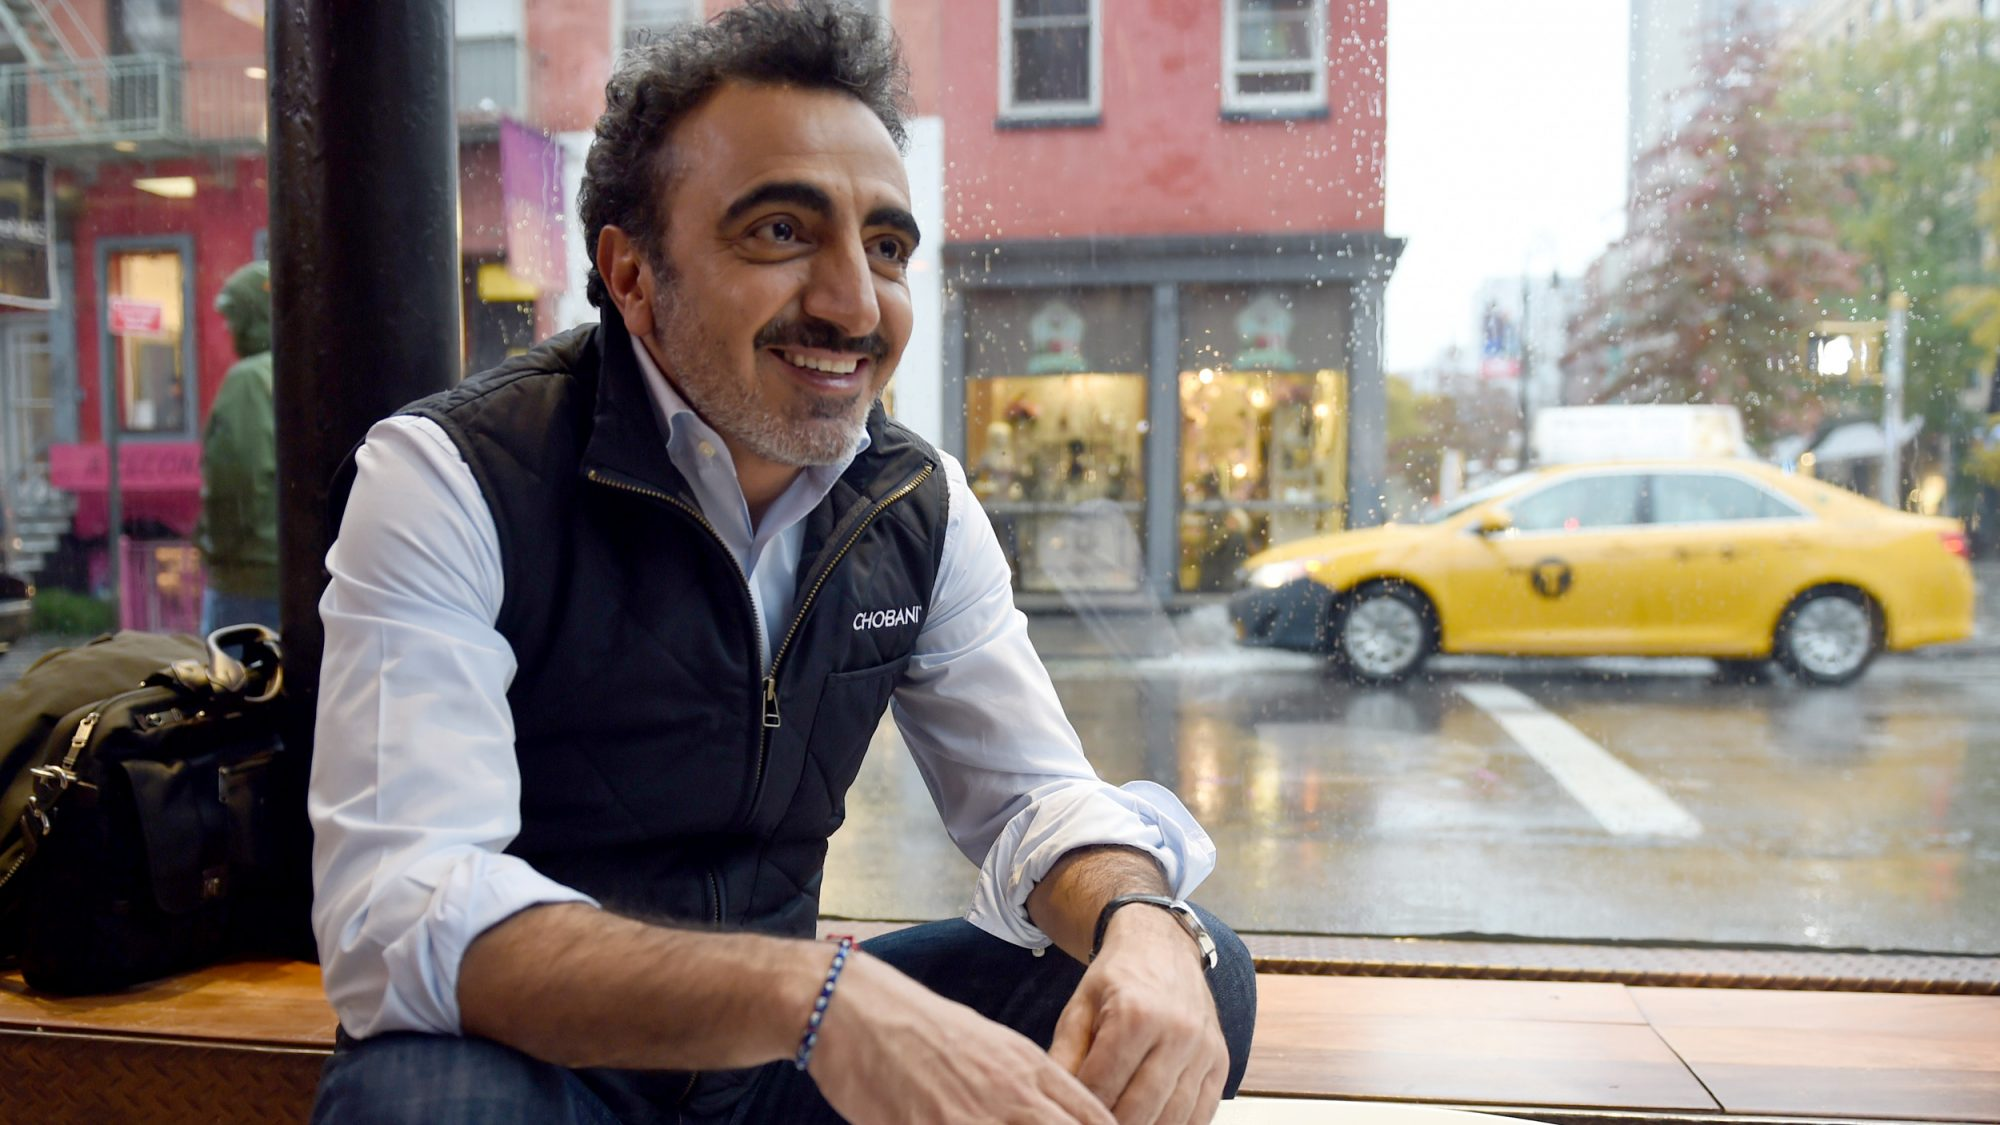 Chobani Offers Parental Leave